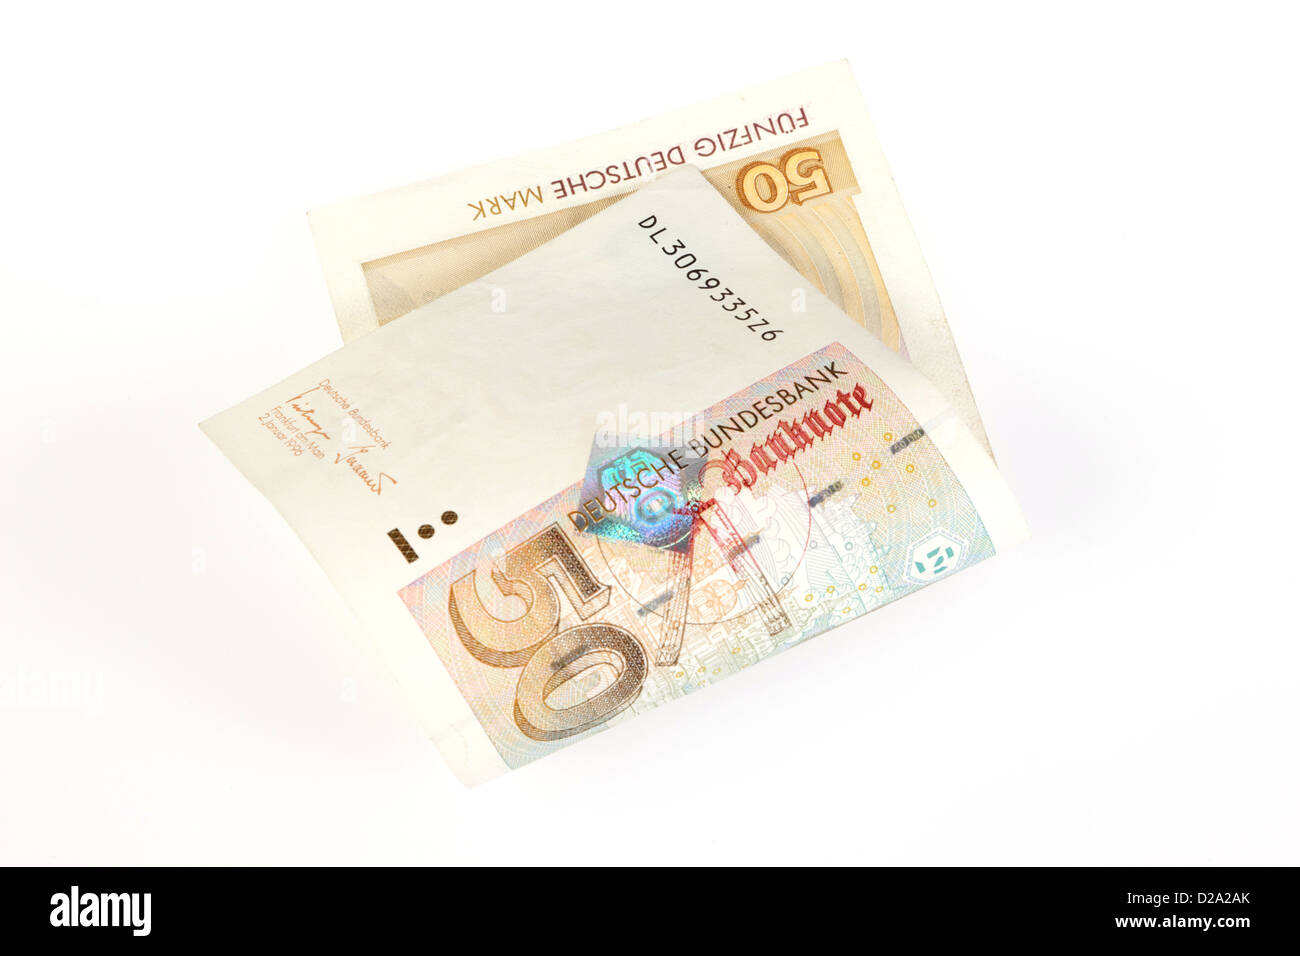 Berlin, Germany, 50 DM bill - Stock Image